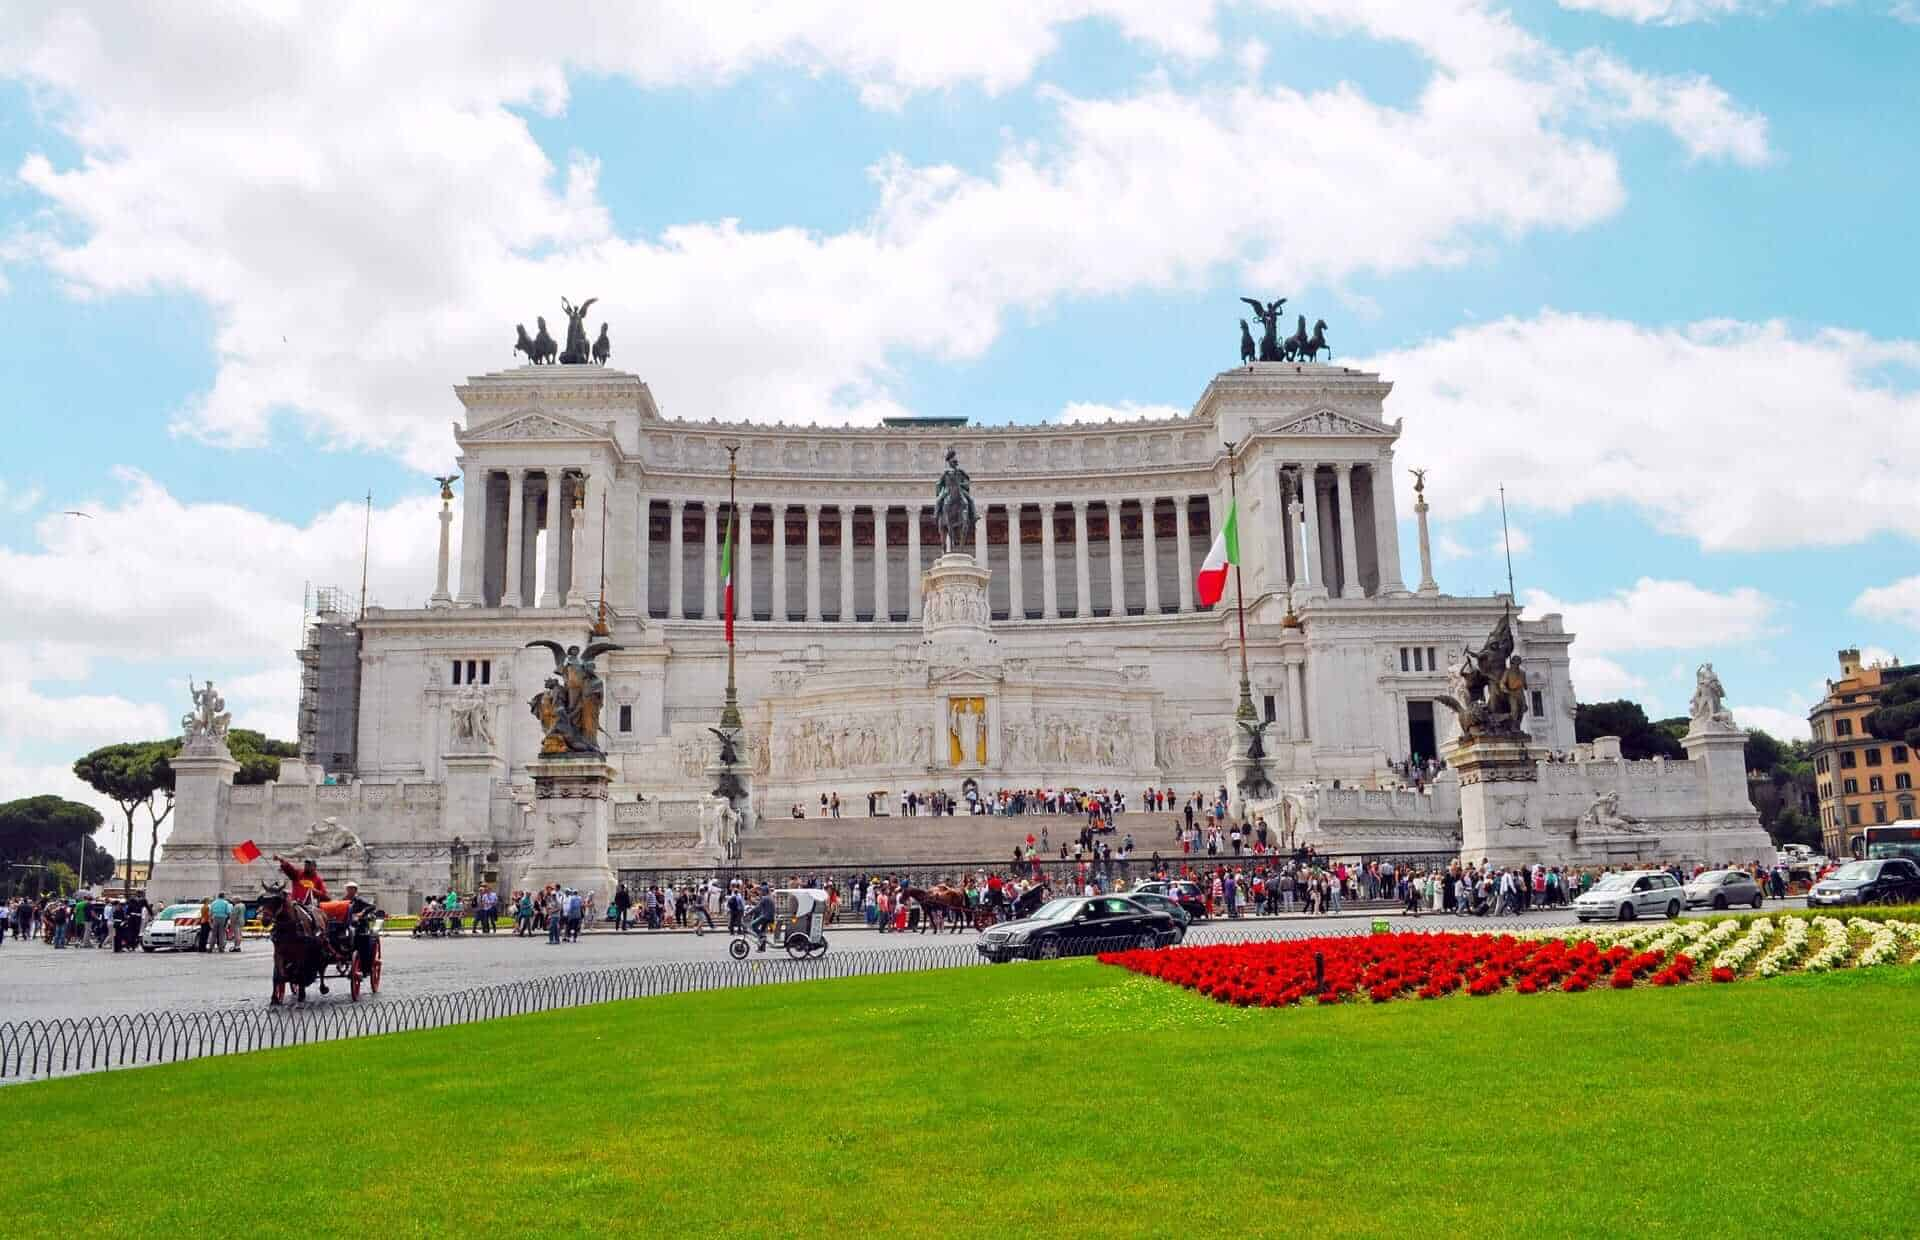 Victor Emmanuel II Monument in Rome